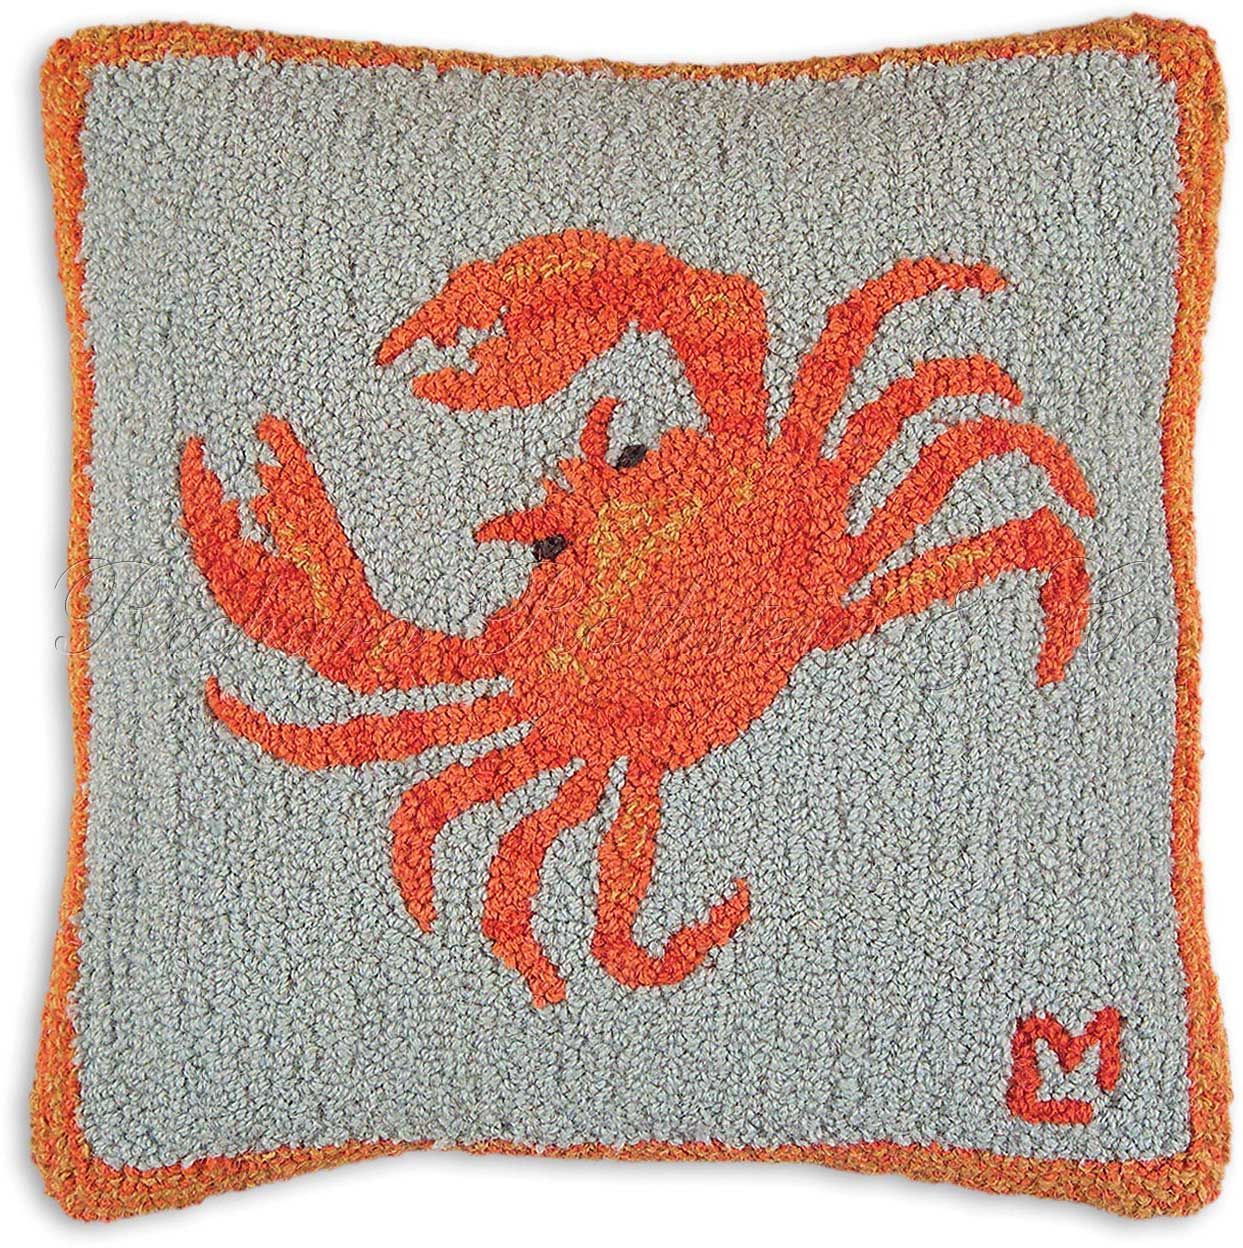 Crab Throw Pillow - Hooked Pillows at NeedlepointPillows.com ...